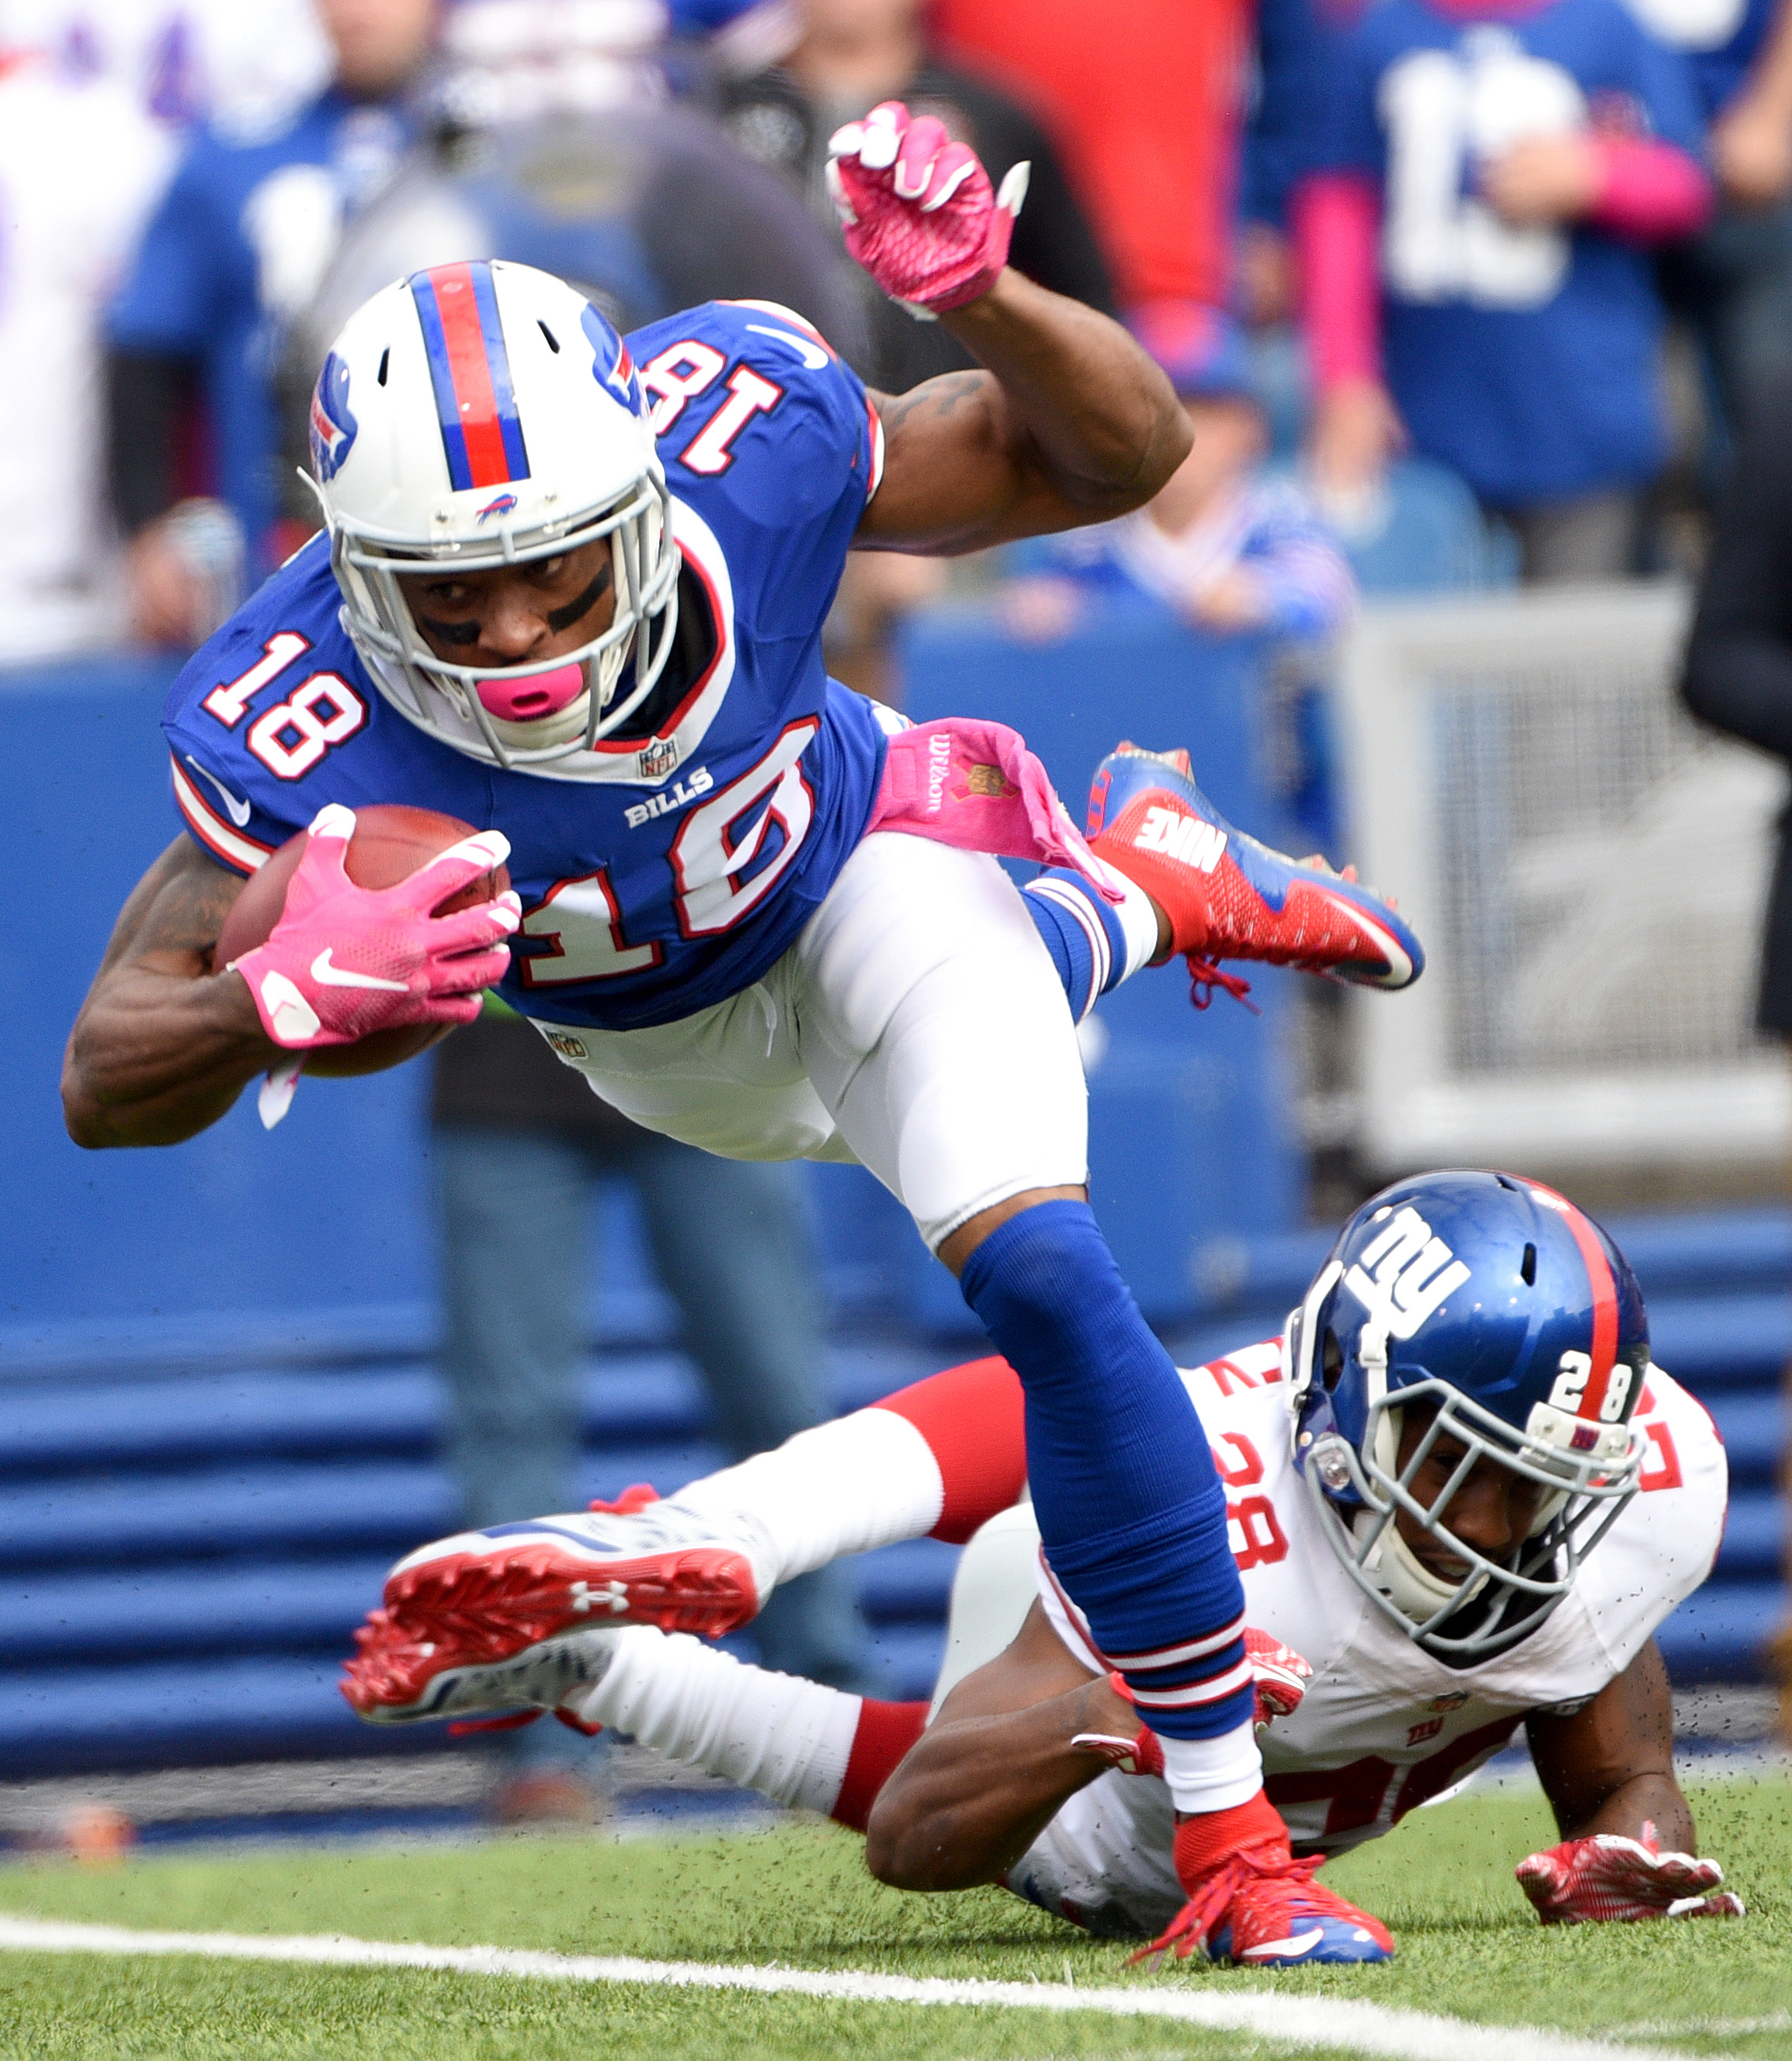 Buffalo Bills wide receiver Percy Harvin (18) is tripped by New York Giants cornerback Jayron Hosley (28) while returning the opening kickoff during the first half of an NFL football game, Sunday, Oct. 4, 2015, in Orchard Park, N.Y. (AP Photo/Gary Wiepert